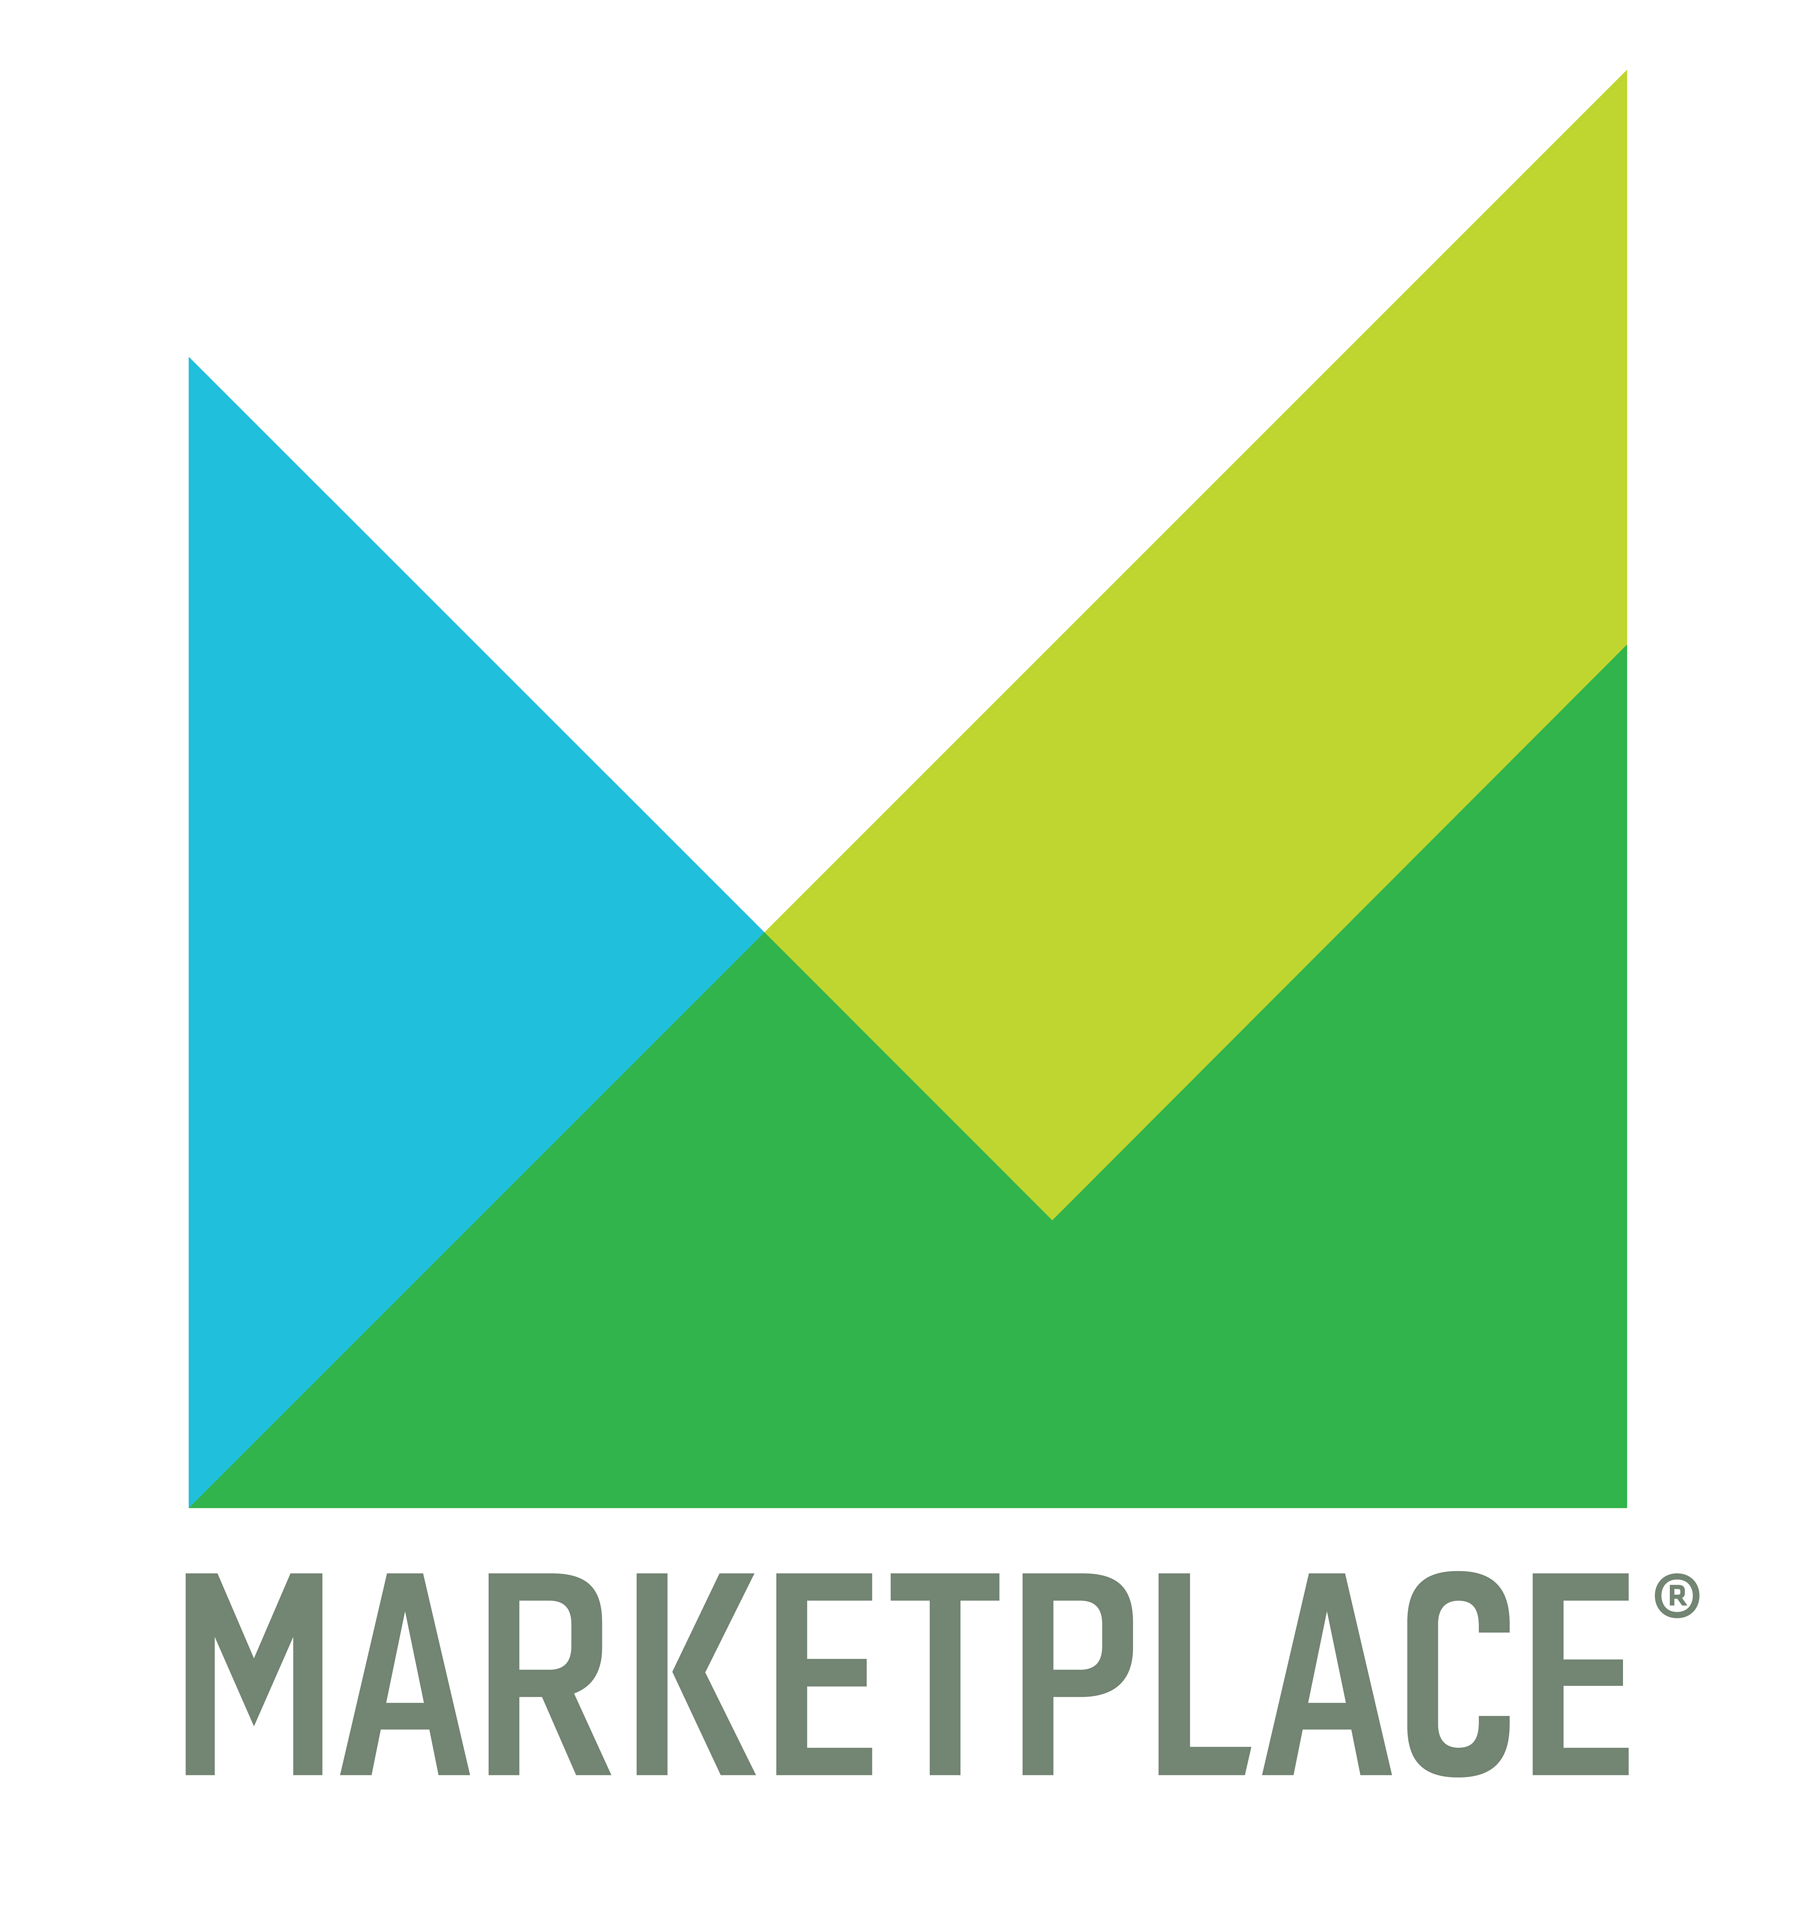 Marketplace_Logo.png